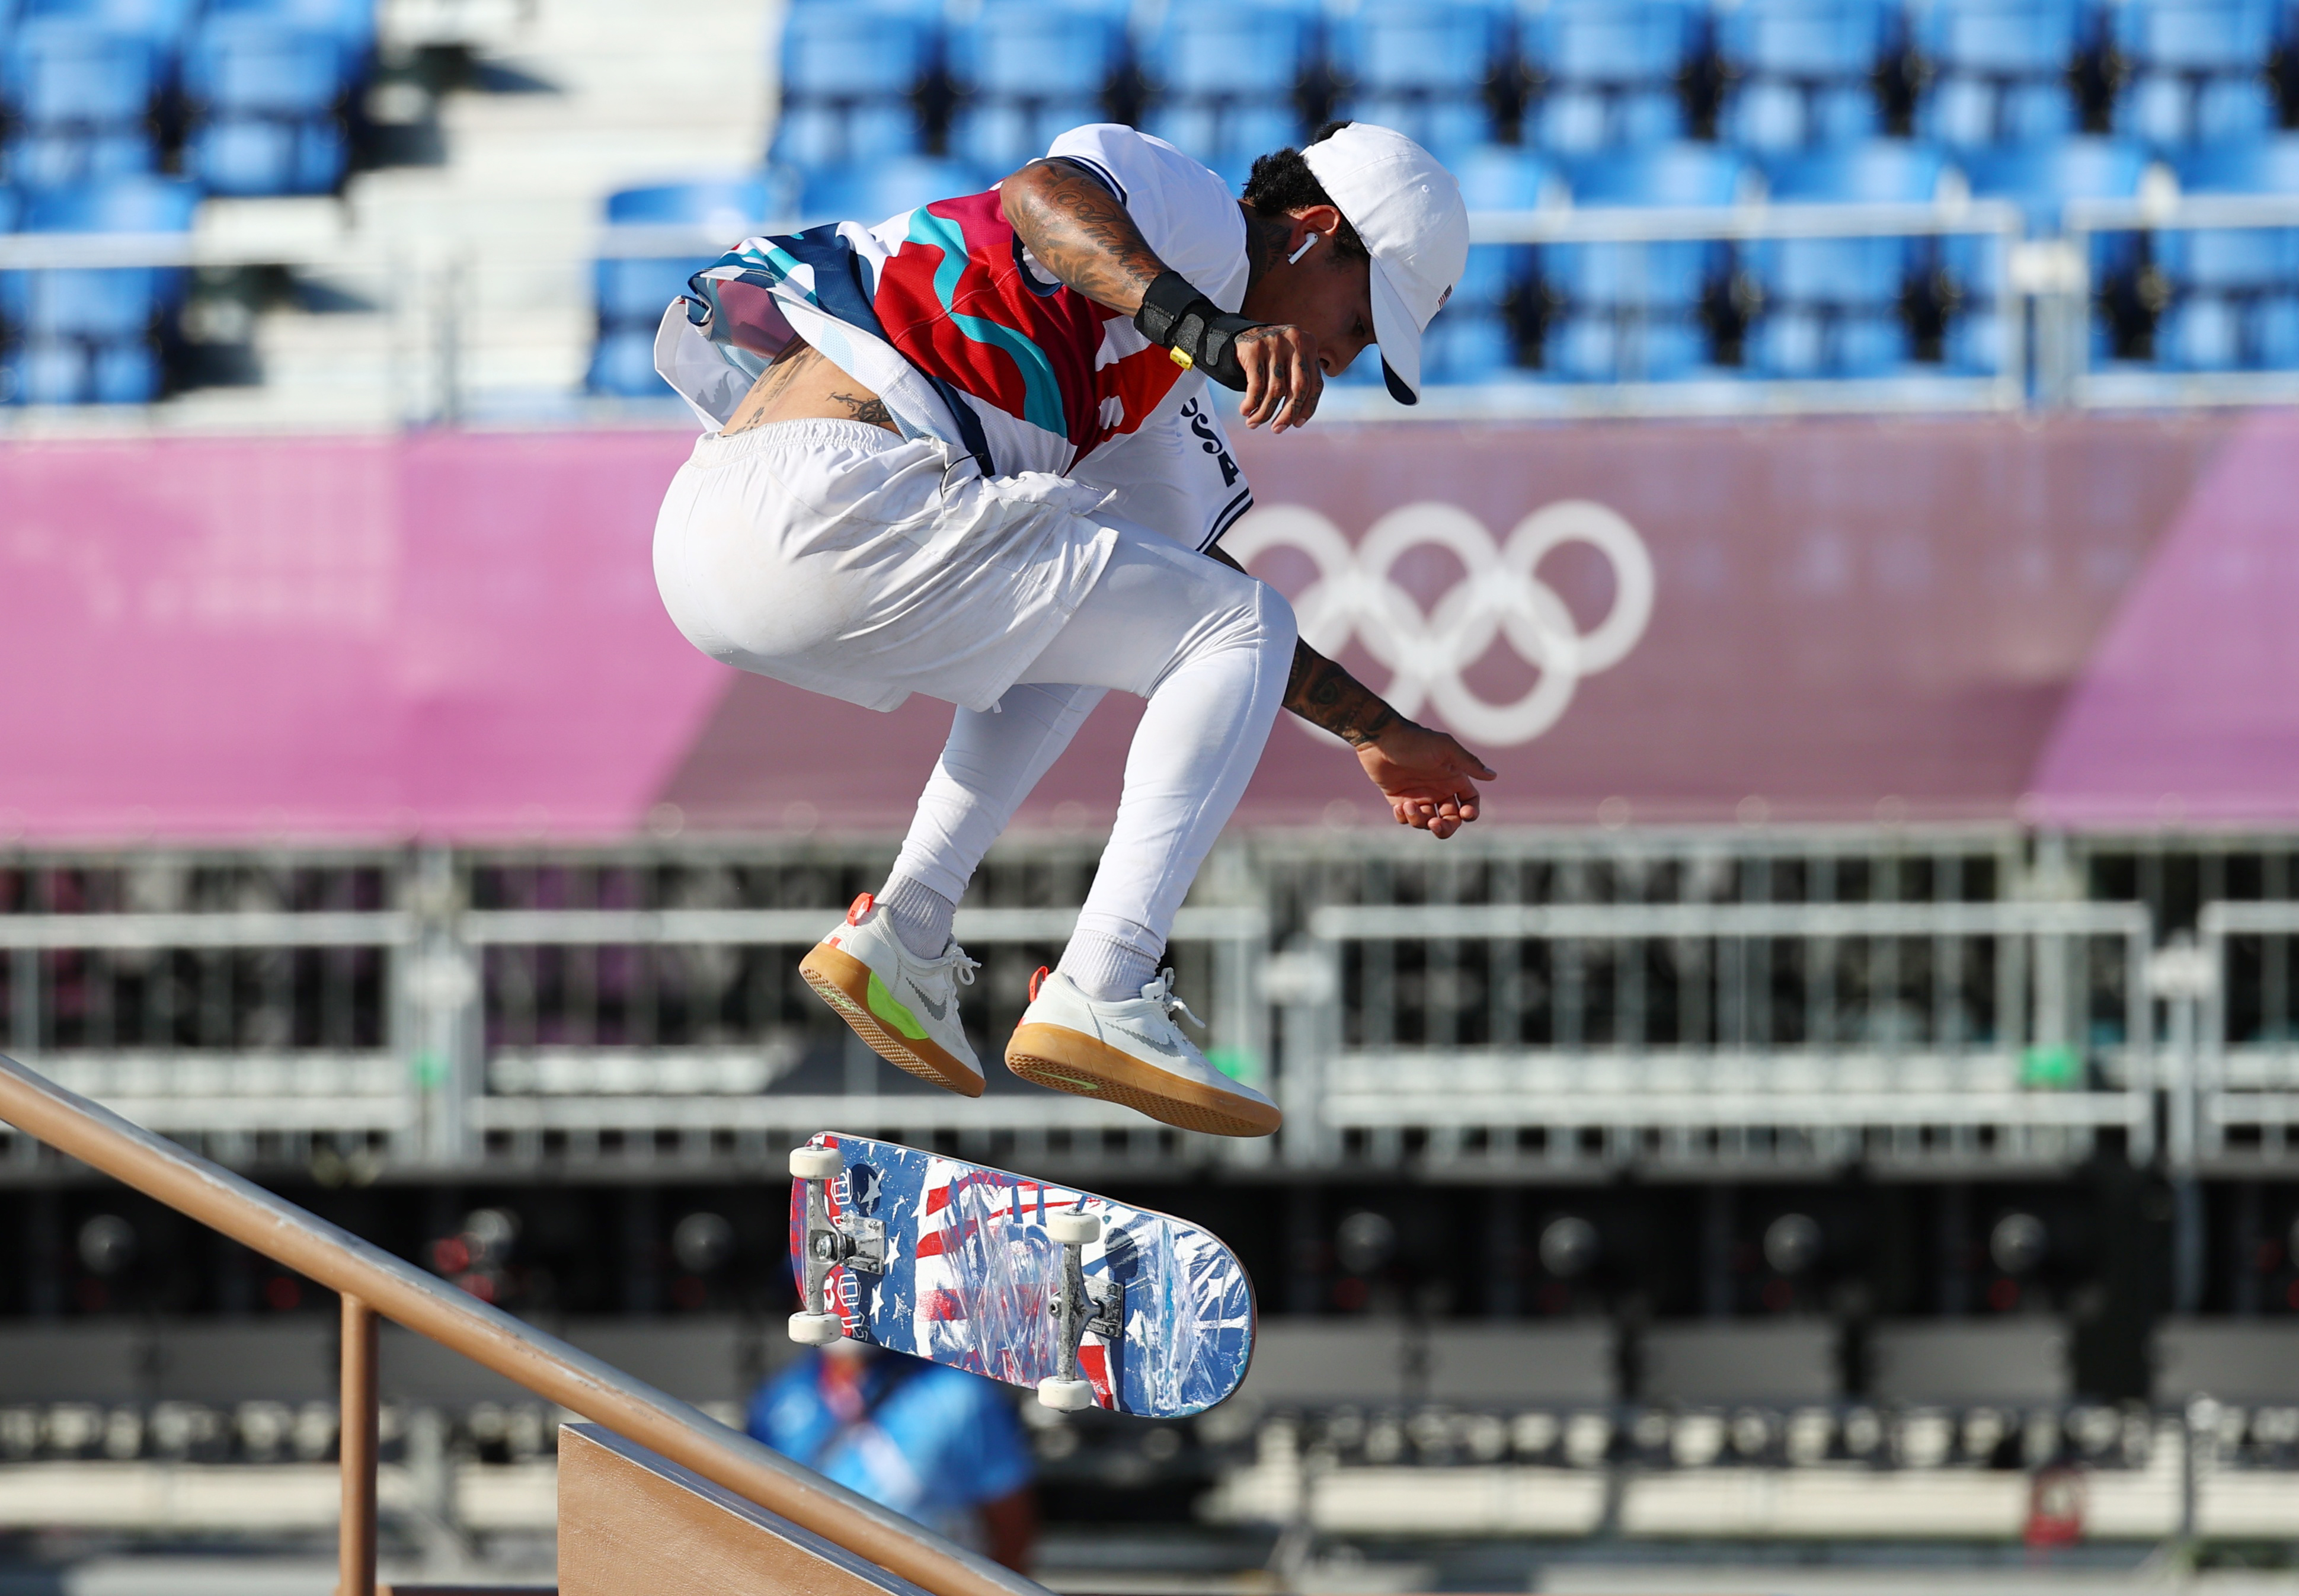 Tokyo 2020 Olympics - Skateboarding Training Session - Ariake Urban Sports Park, Tokyo, Japan - July 24, 2021. Nyjah Huston of the United States in action during training REUTERS/Lucy Nicholson